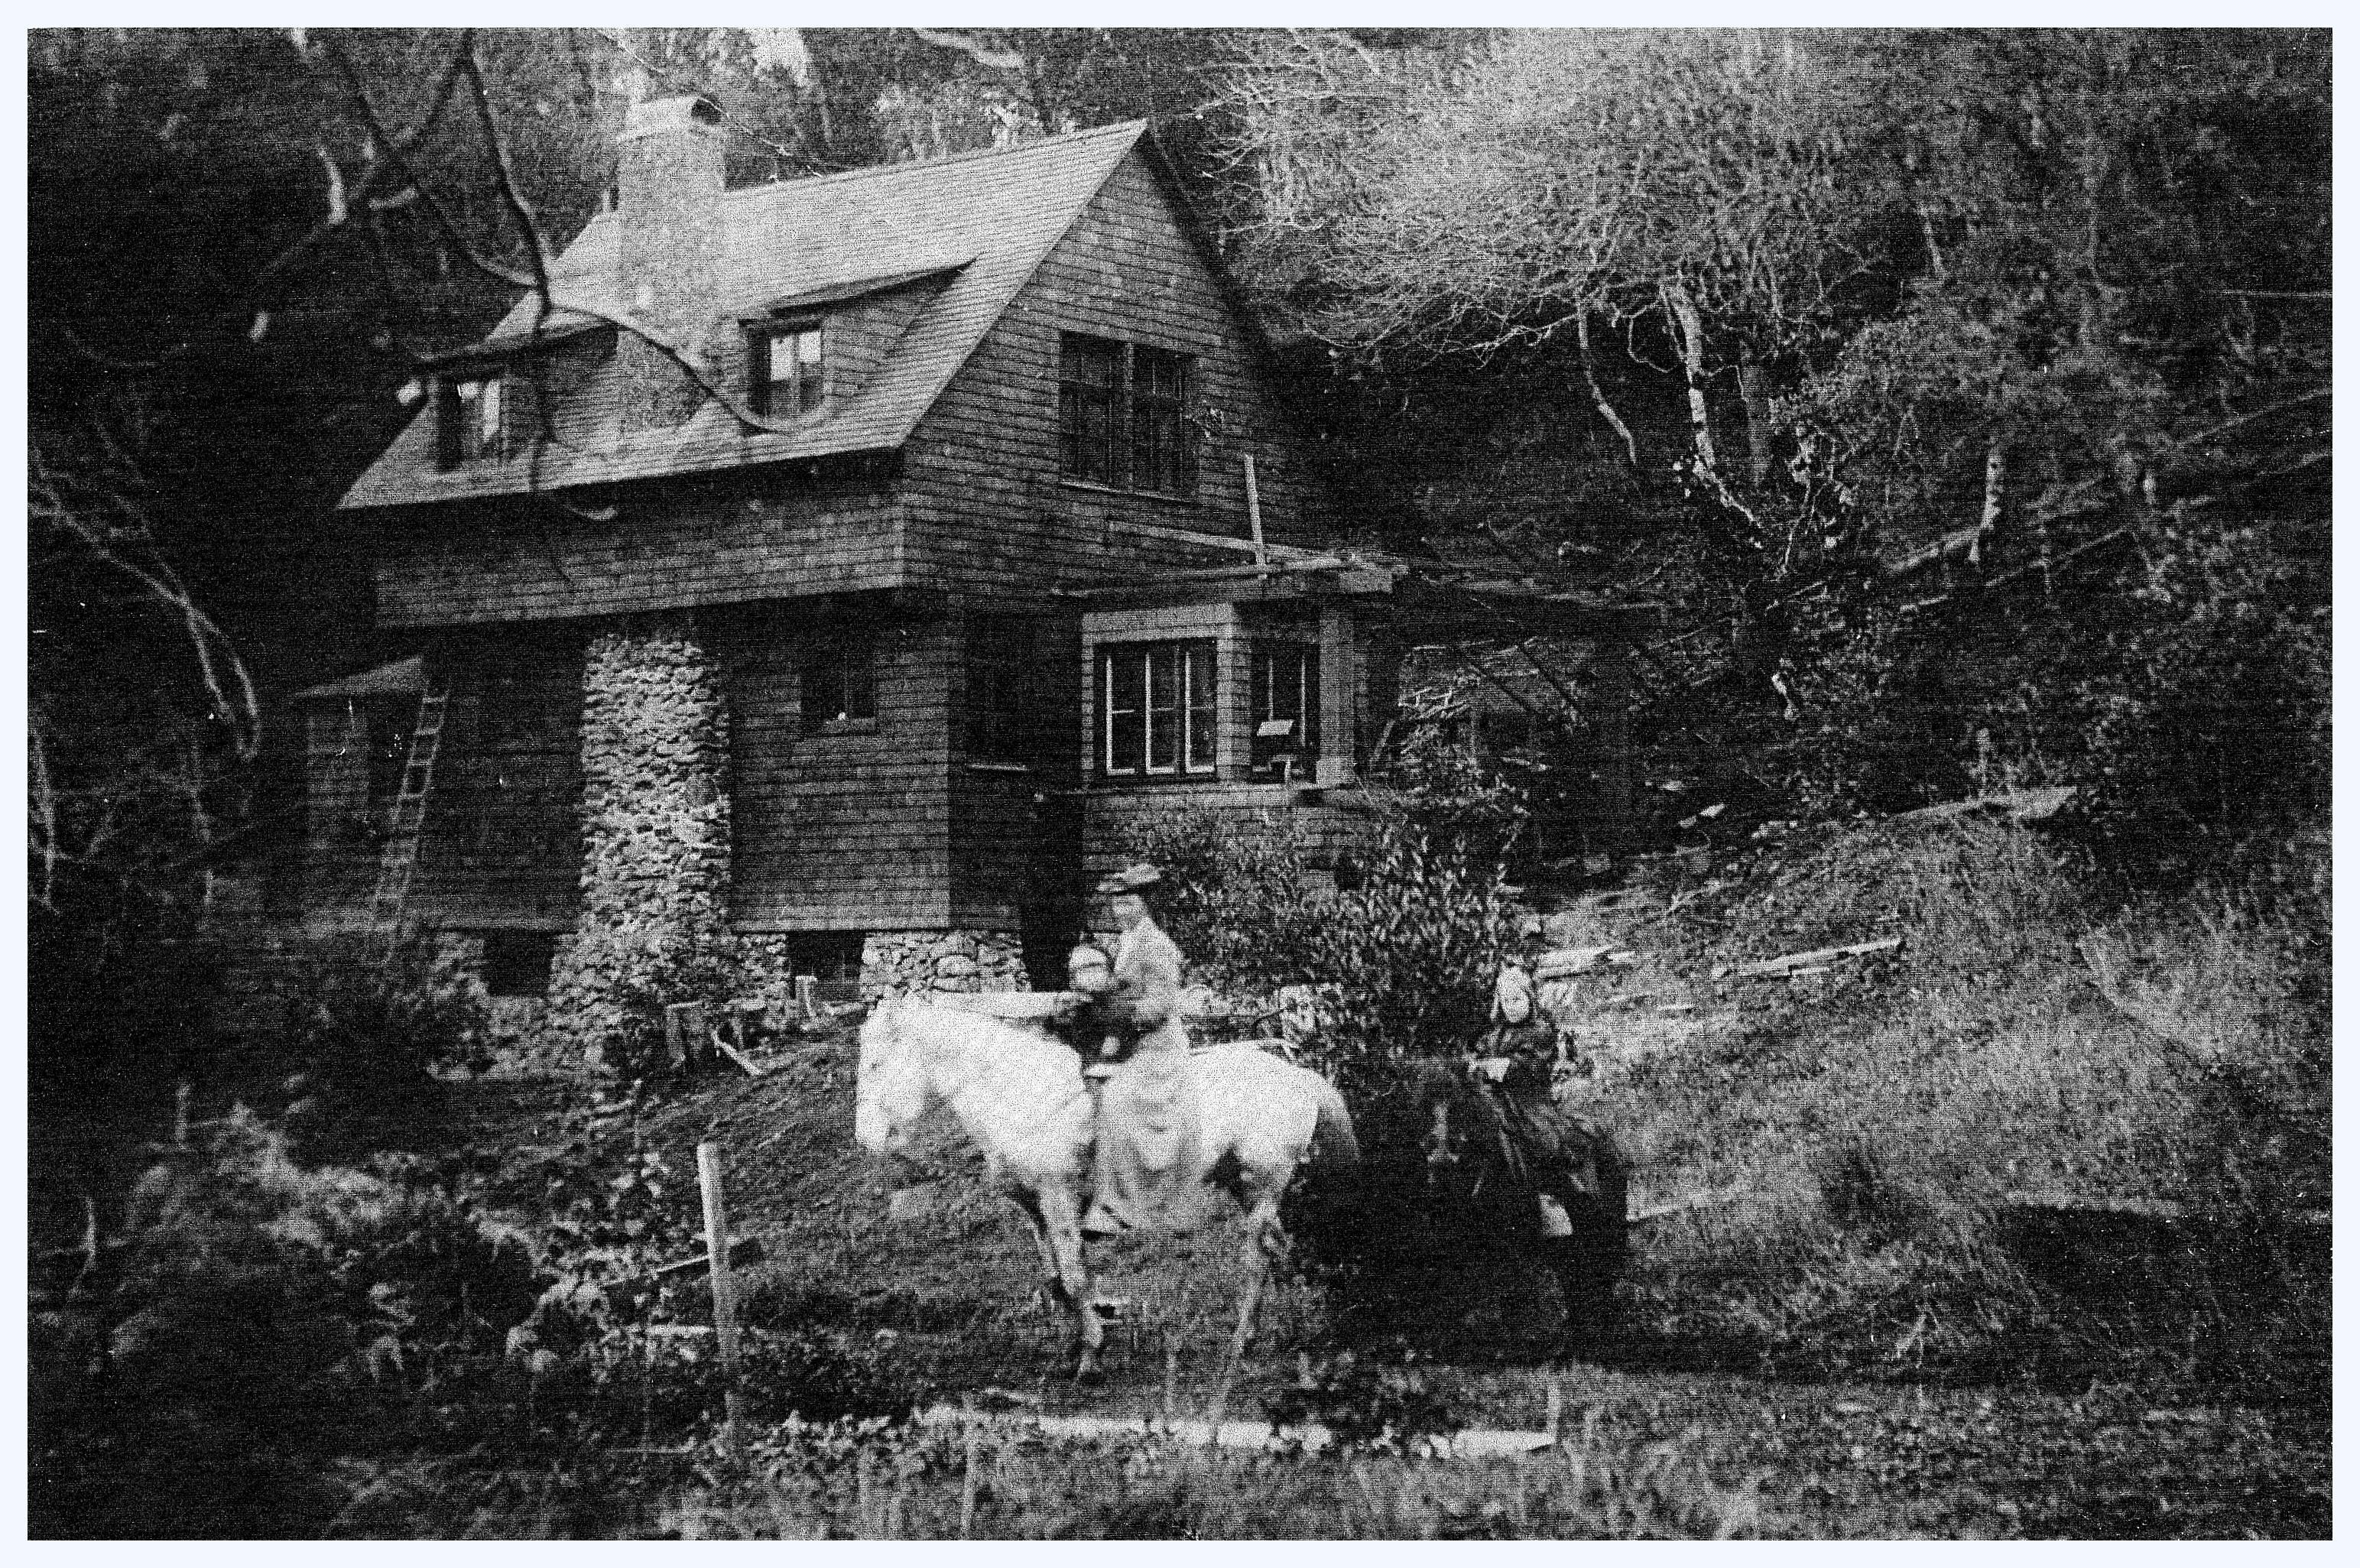 Eells farm house, wife and daughters - 1907